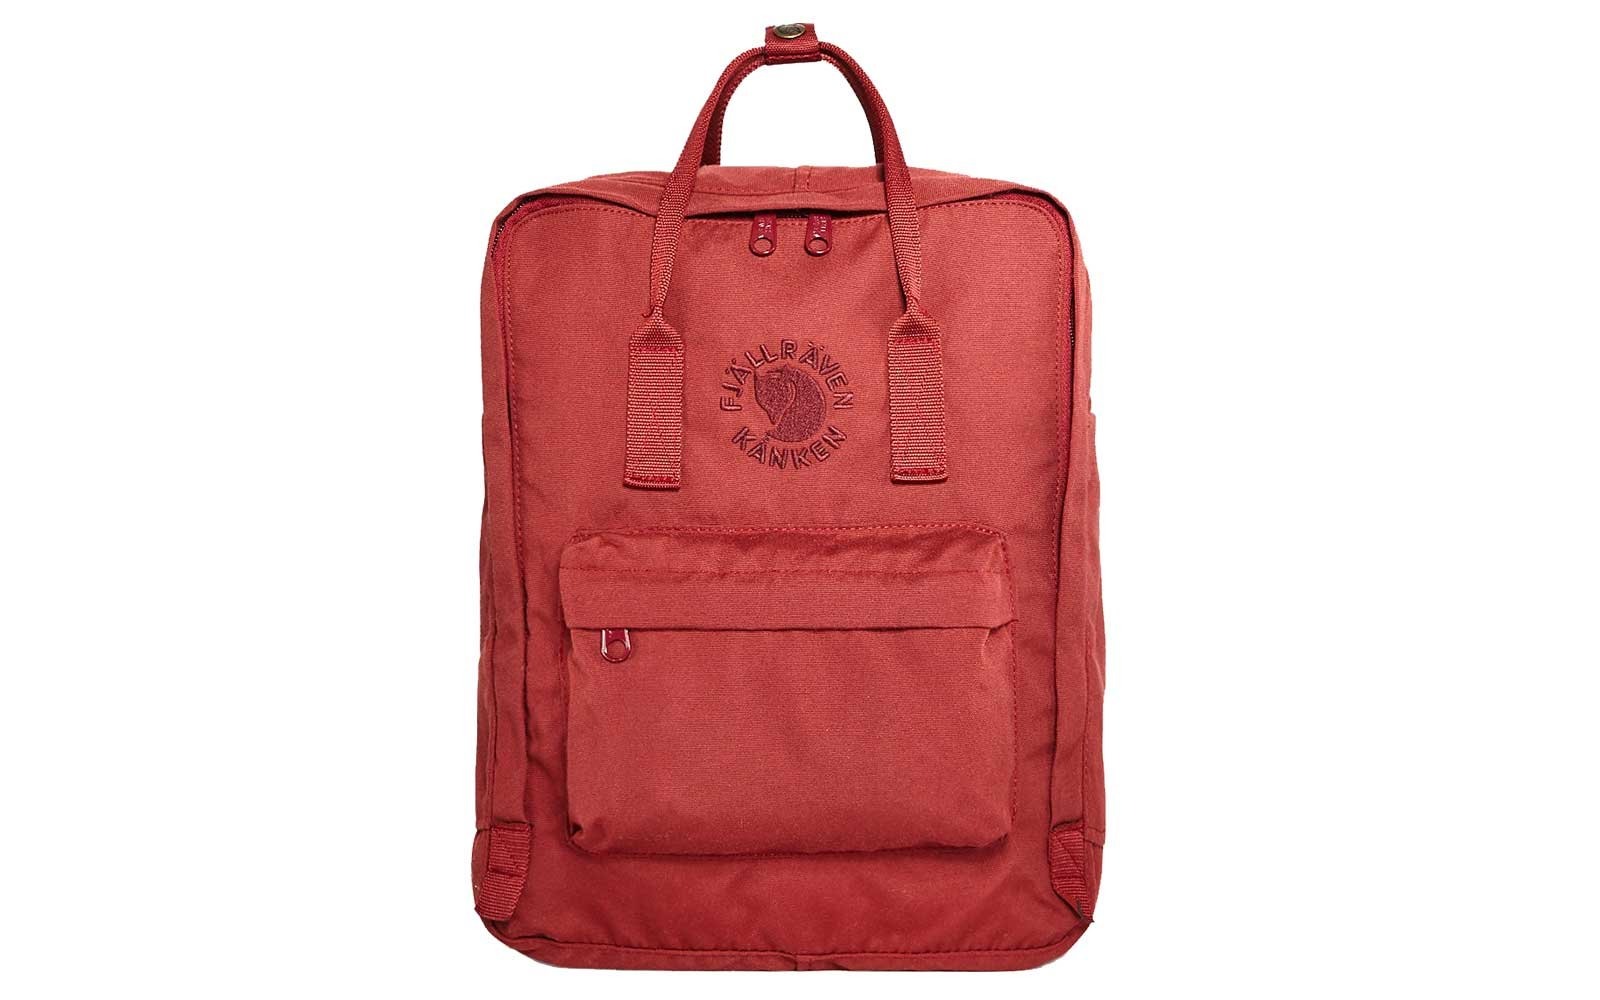 233843ae1a5c Red waterproof backpack from Fjallraven